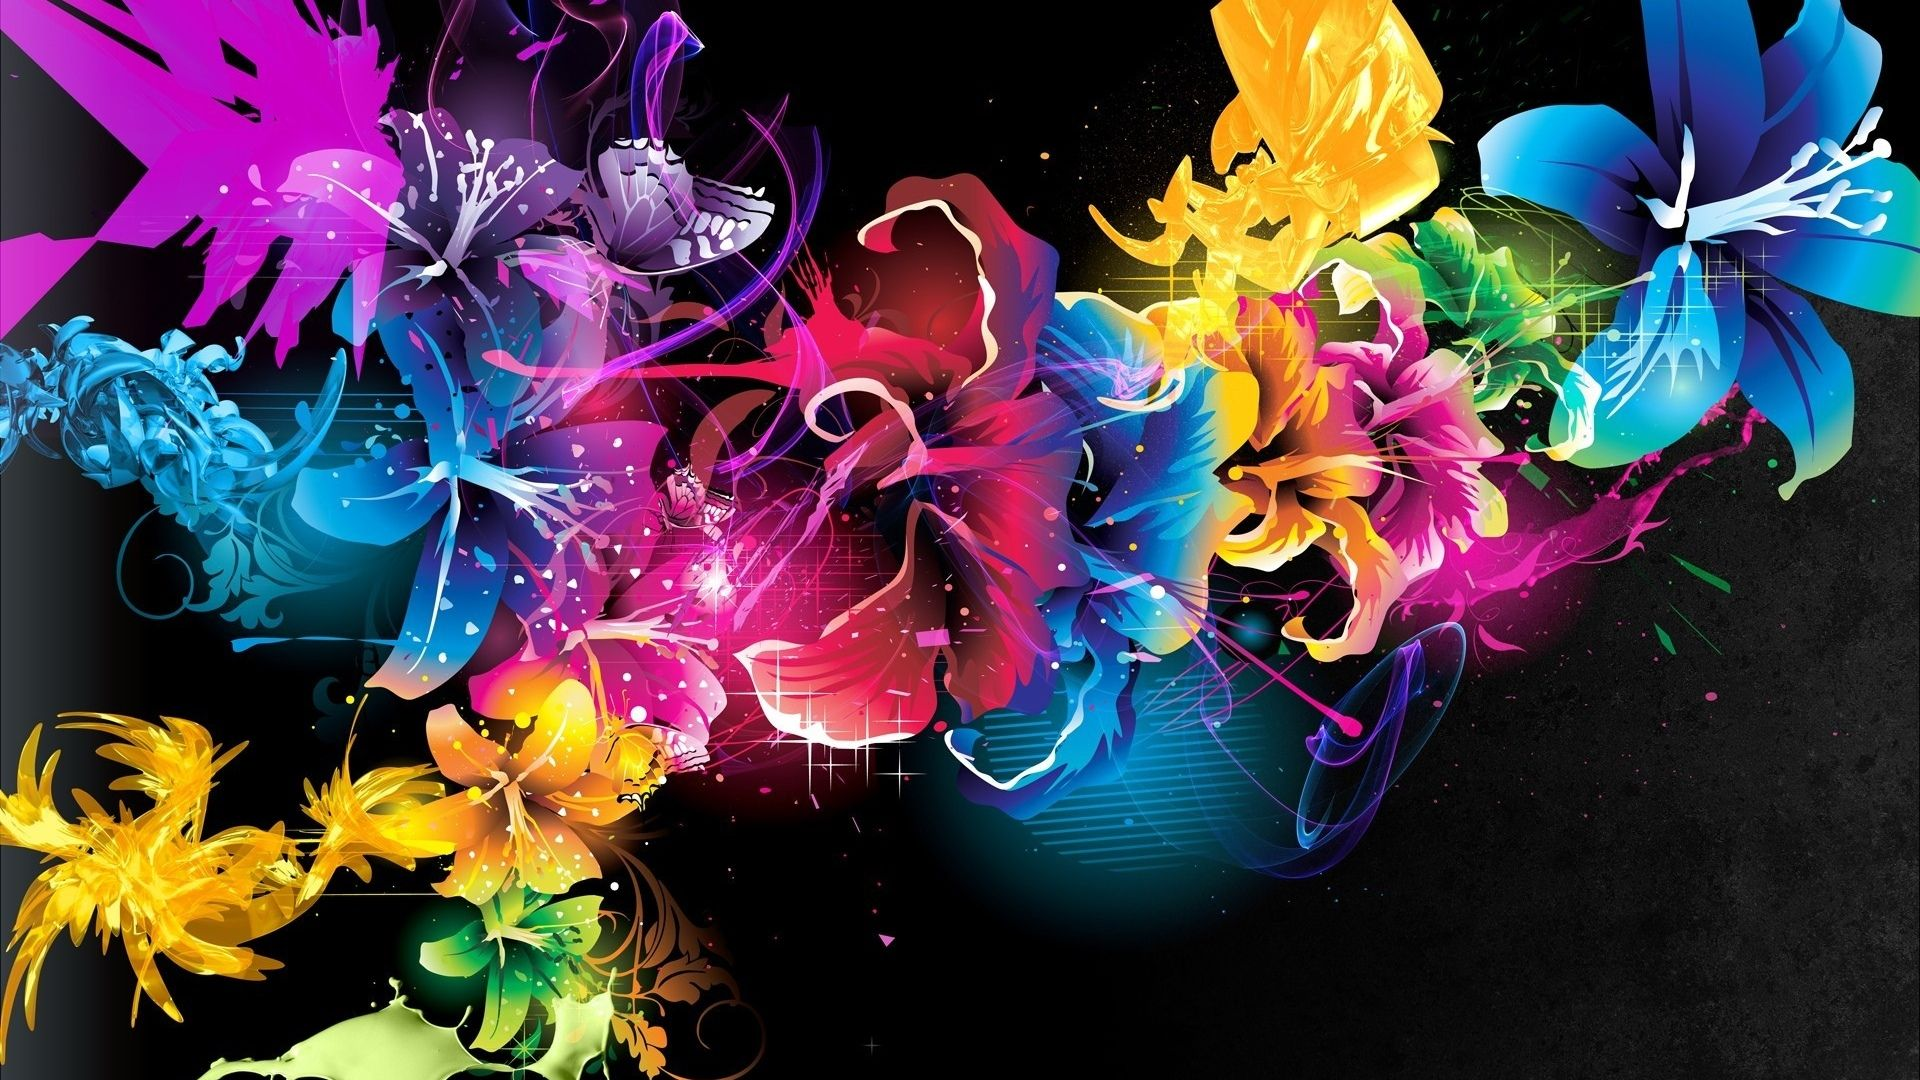 Wallpaper Abstract Flowers Desktop Abstraction Paint